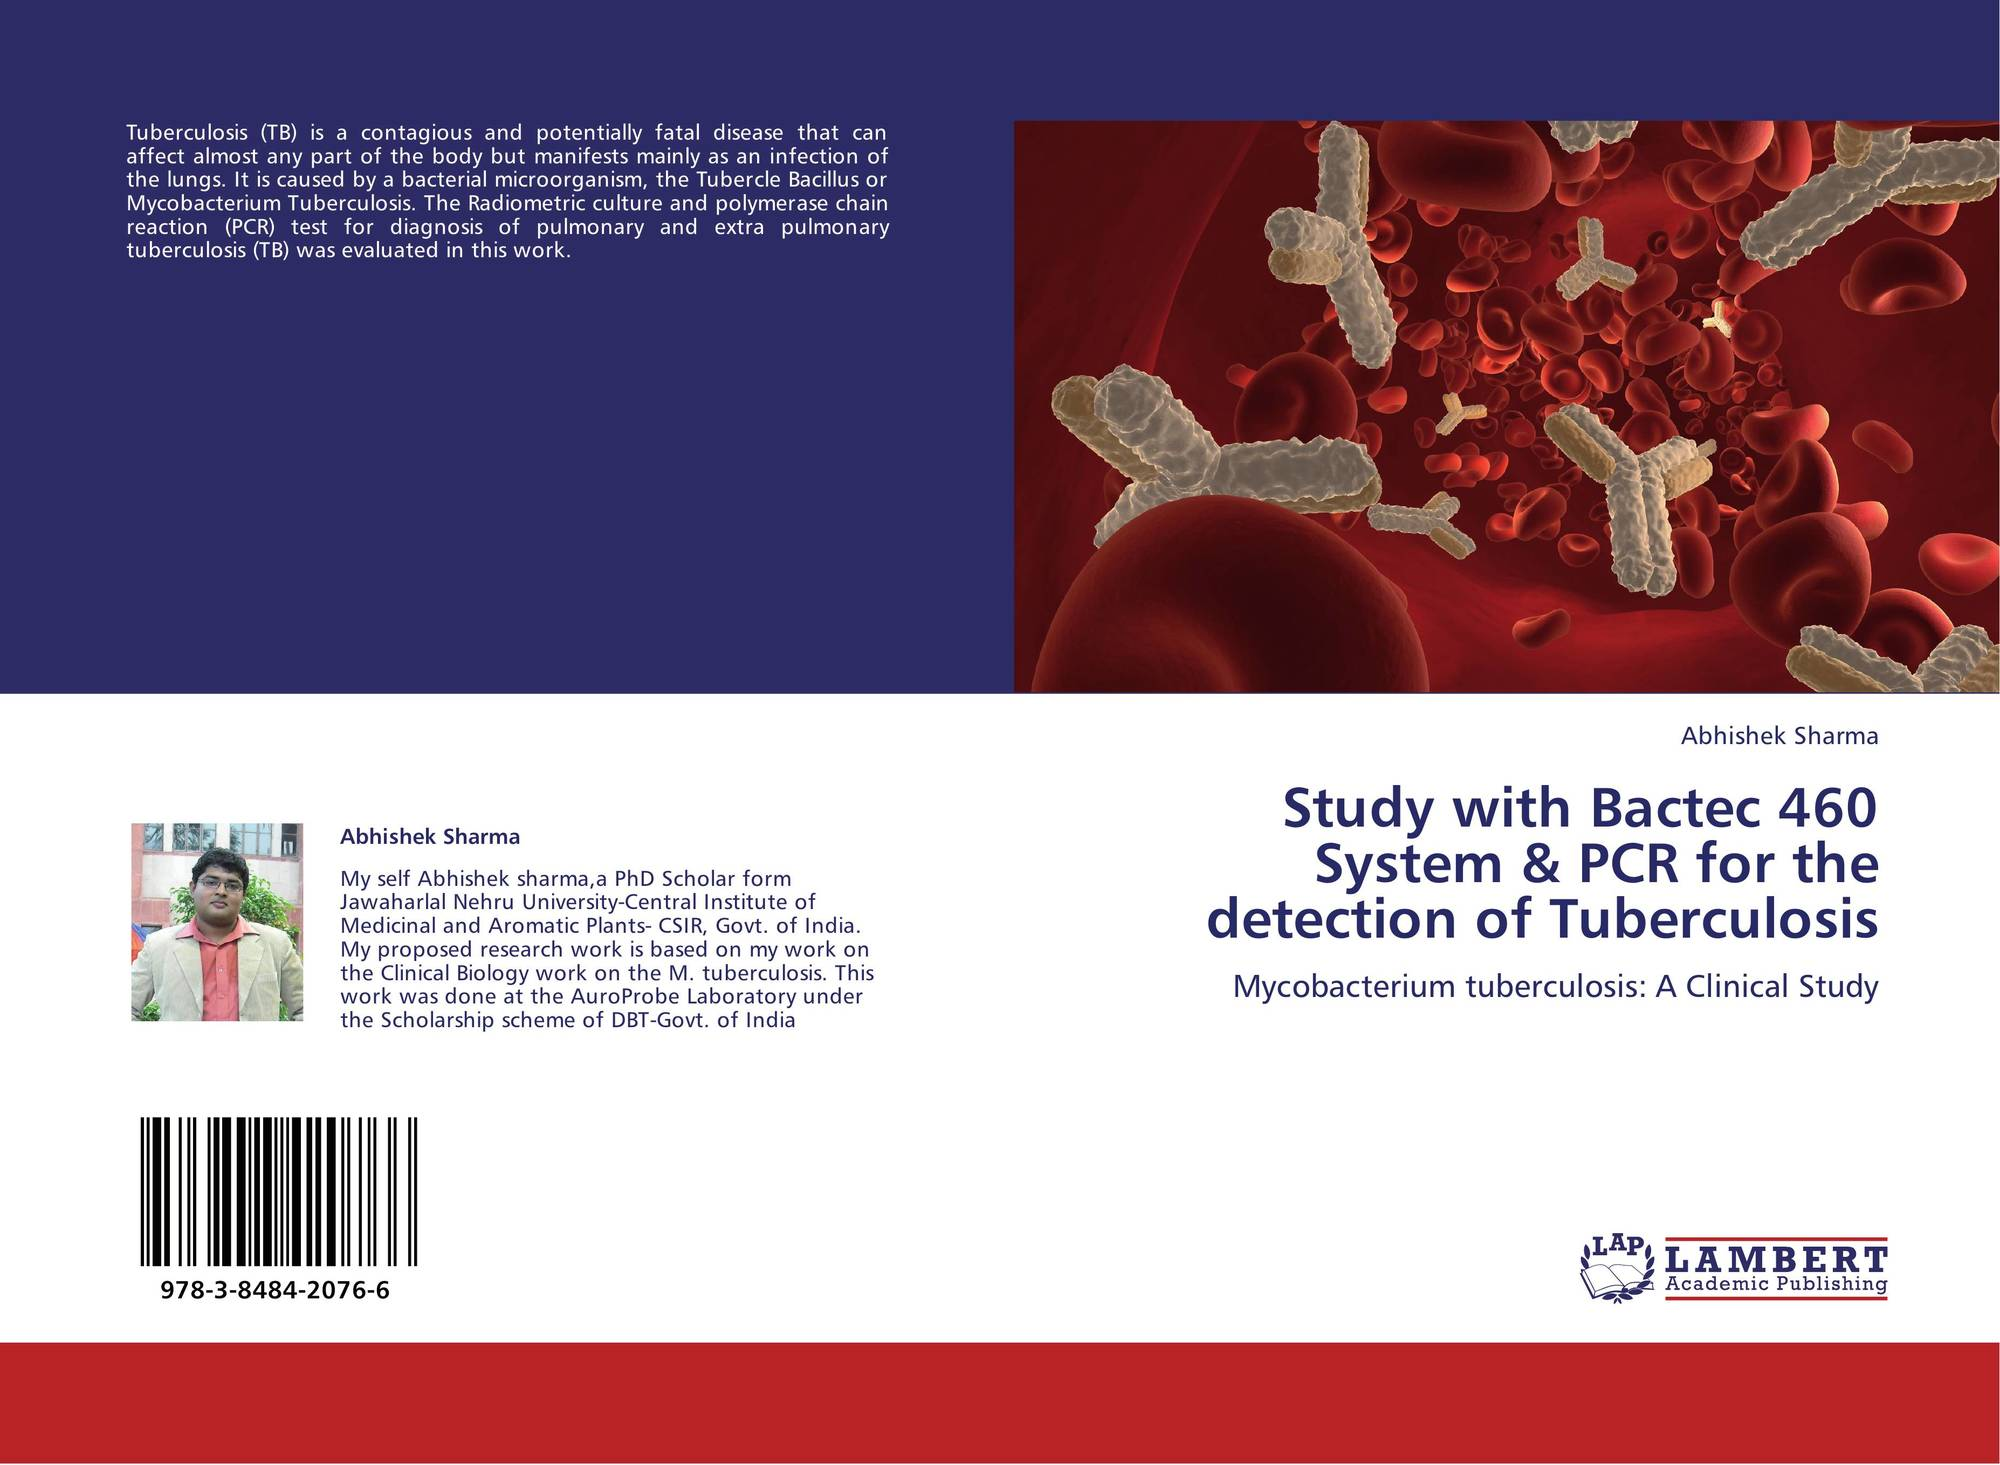 tuberculosis thesis Pulmonary tuberculosis so eliminating tuberculosis transmission is an important obstacle to decreasing the overall rates of the disease have been implicated in the high rates of tuberculosis this thesis examines and compares the social determinants of tuberculosis transmission among.